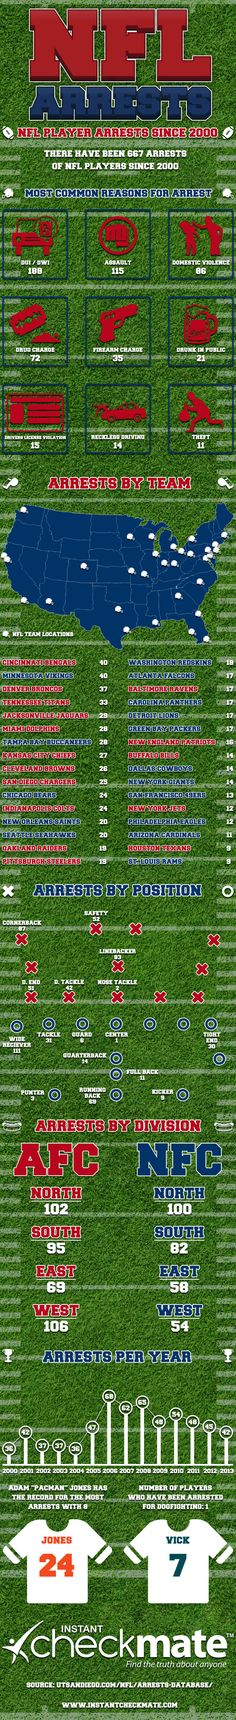 Wow! There has been 667 arrests in the NFL since 2000. #nfl #sports #mondaynightfootball